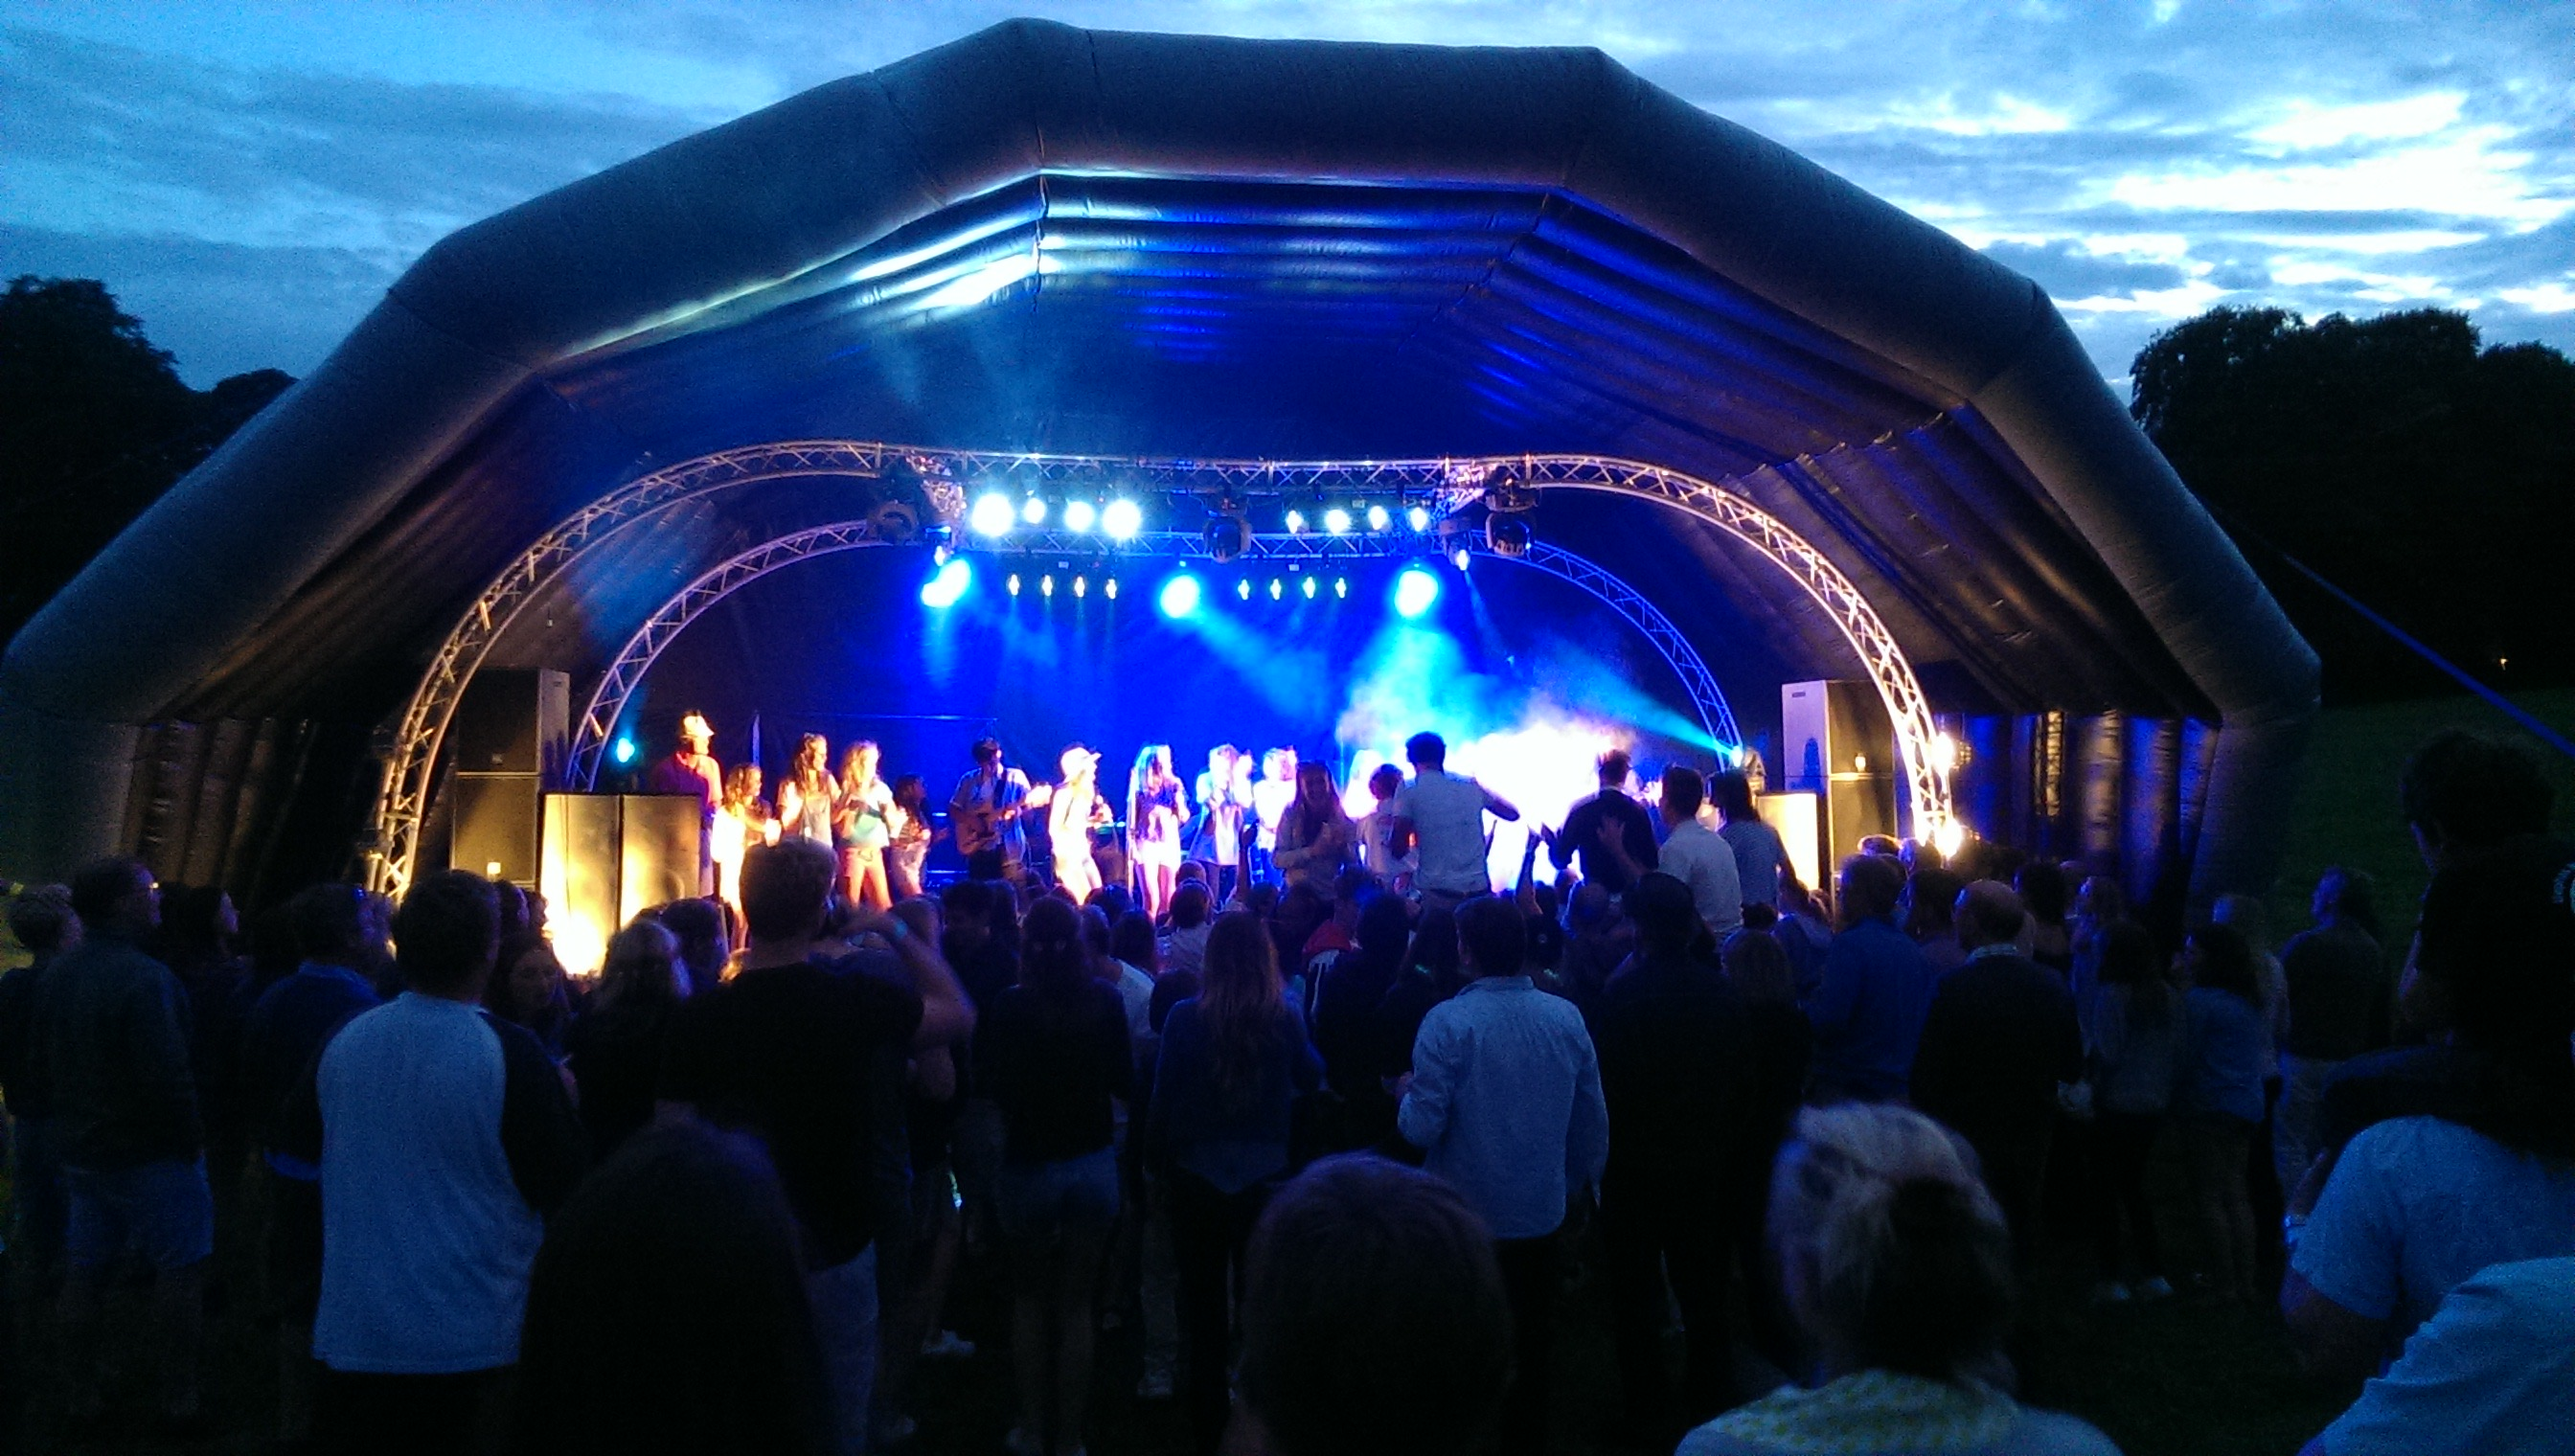 Inflatable stage dome at Meon 2